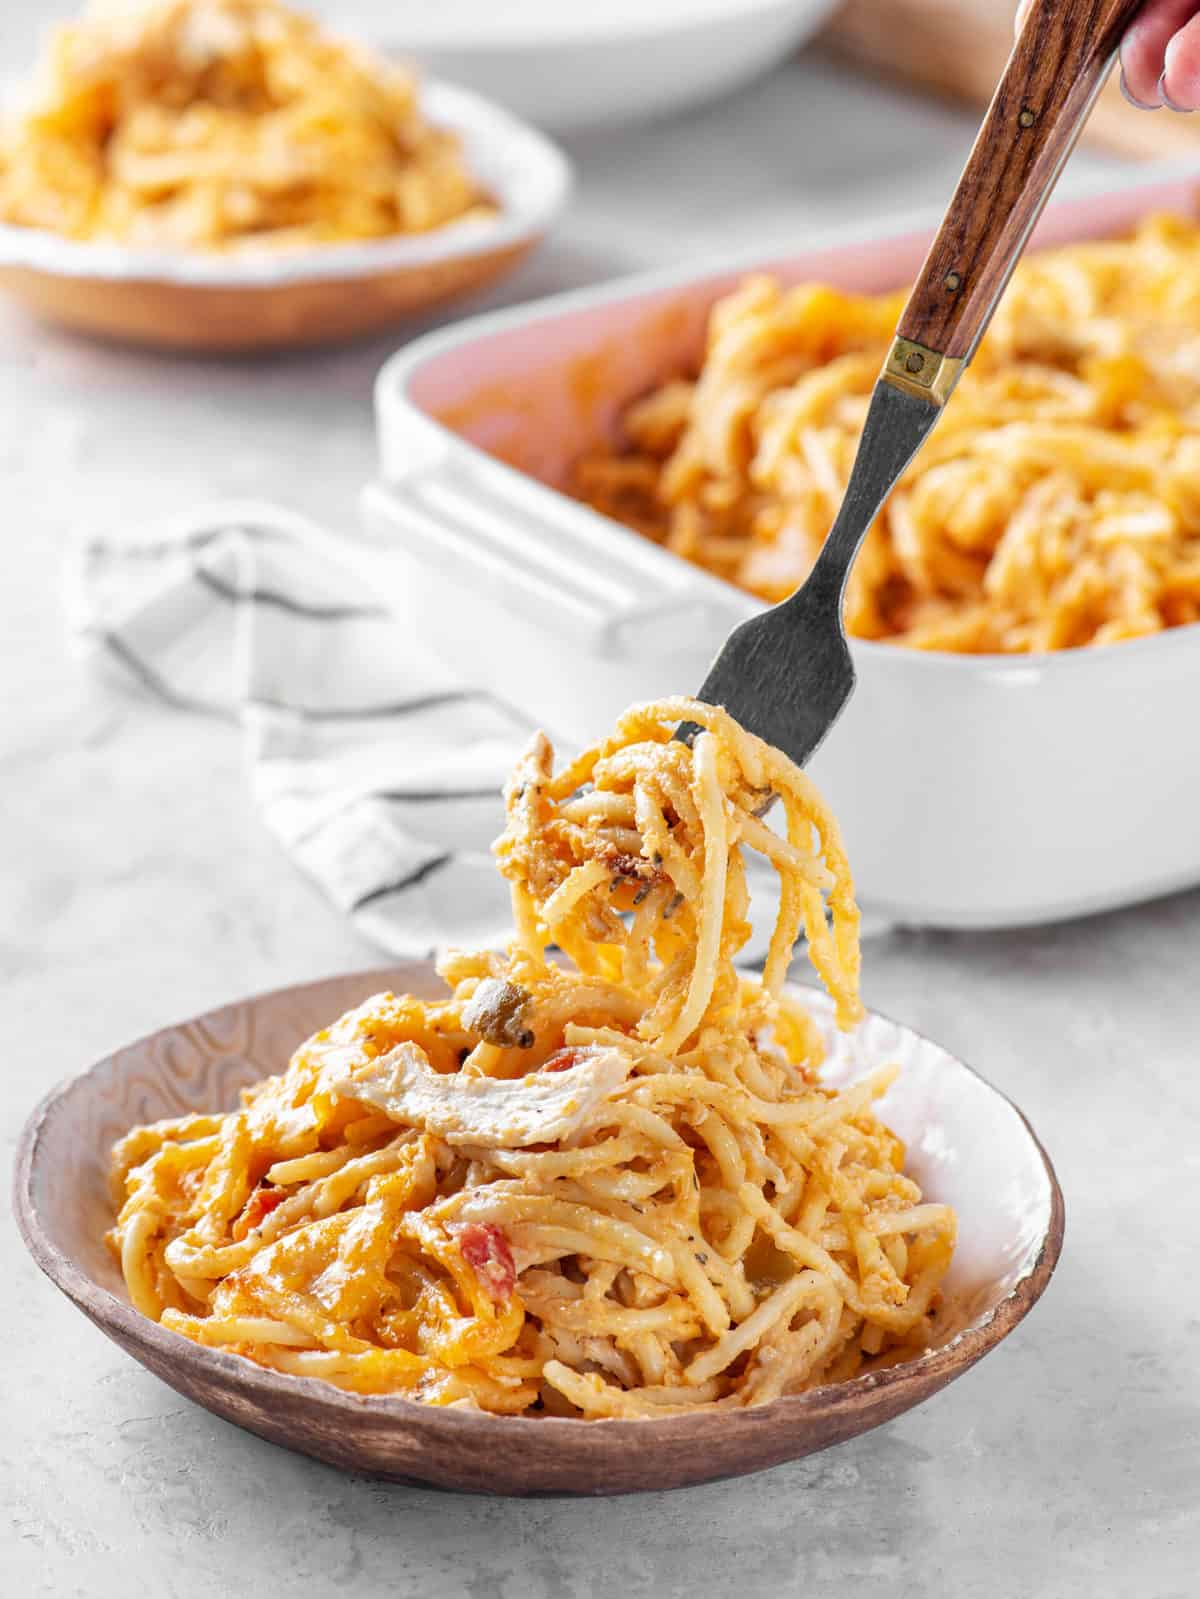 serving of chicken spaghetti served in a wood decorated bowl with a fork